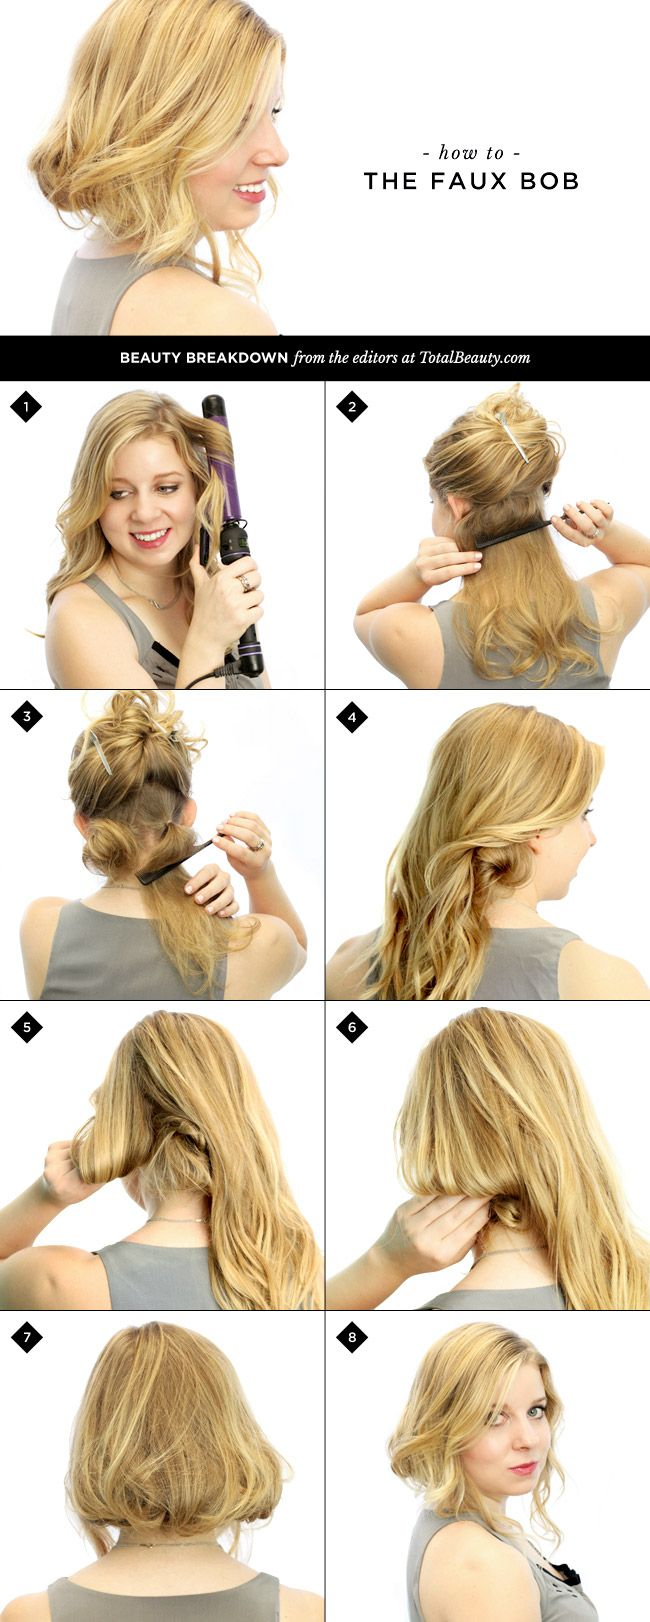 How To Do A Faux Bob In 8 Easy Steps Bob Hairstyles Fake Short Hair Long Hair Styles